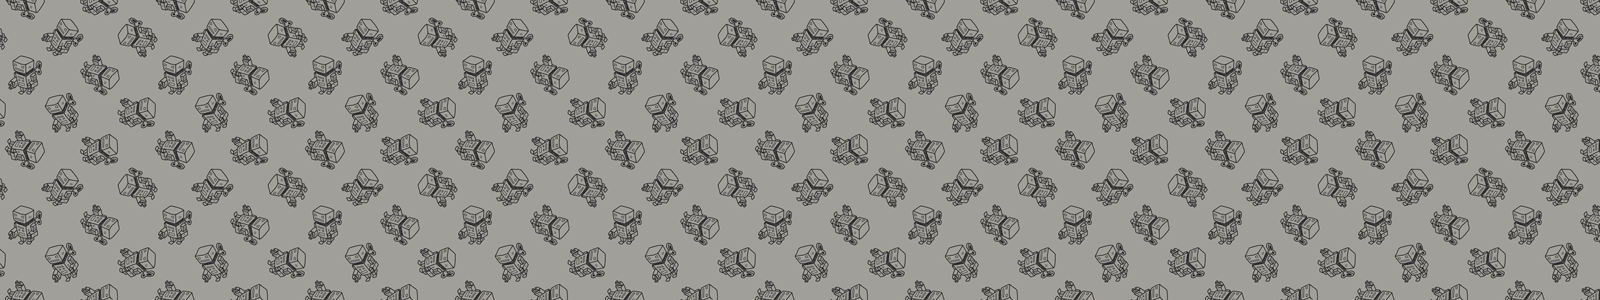 background robot pattern